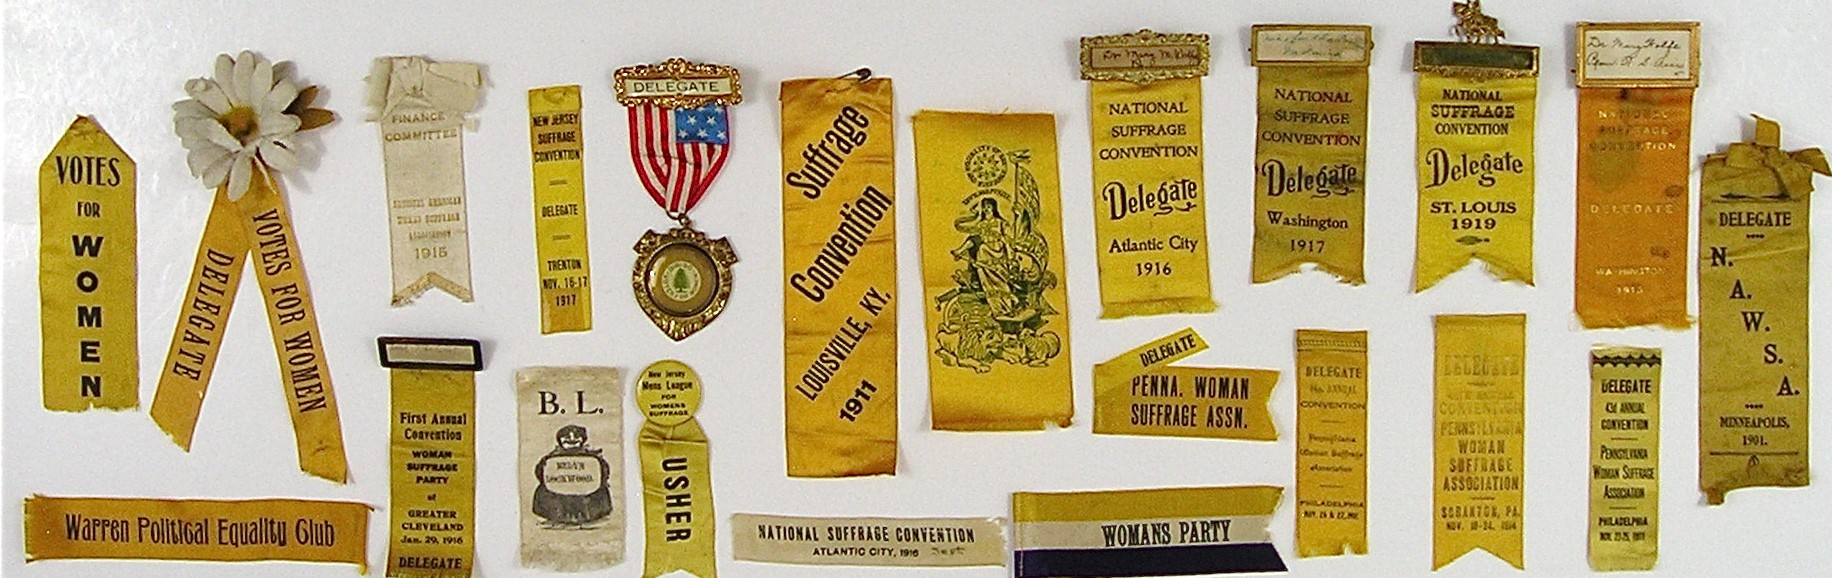 women's suffrage ribbons